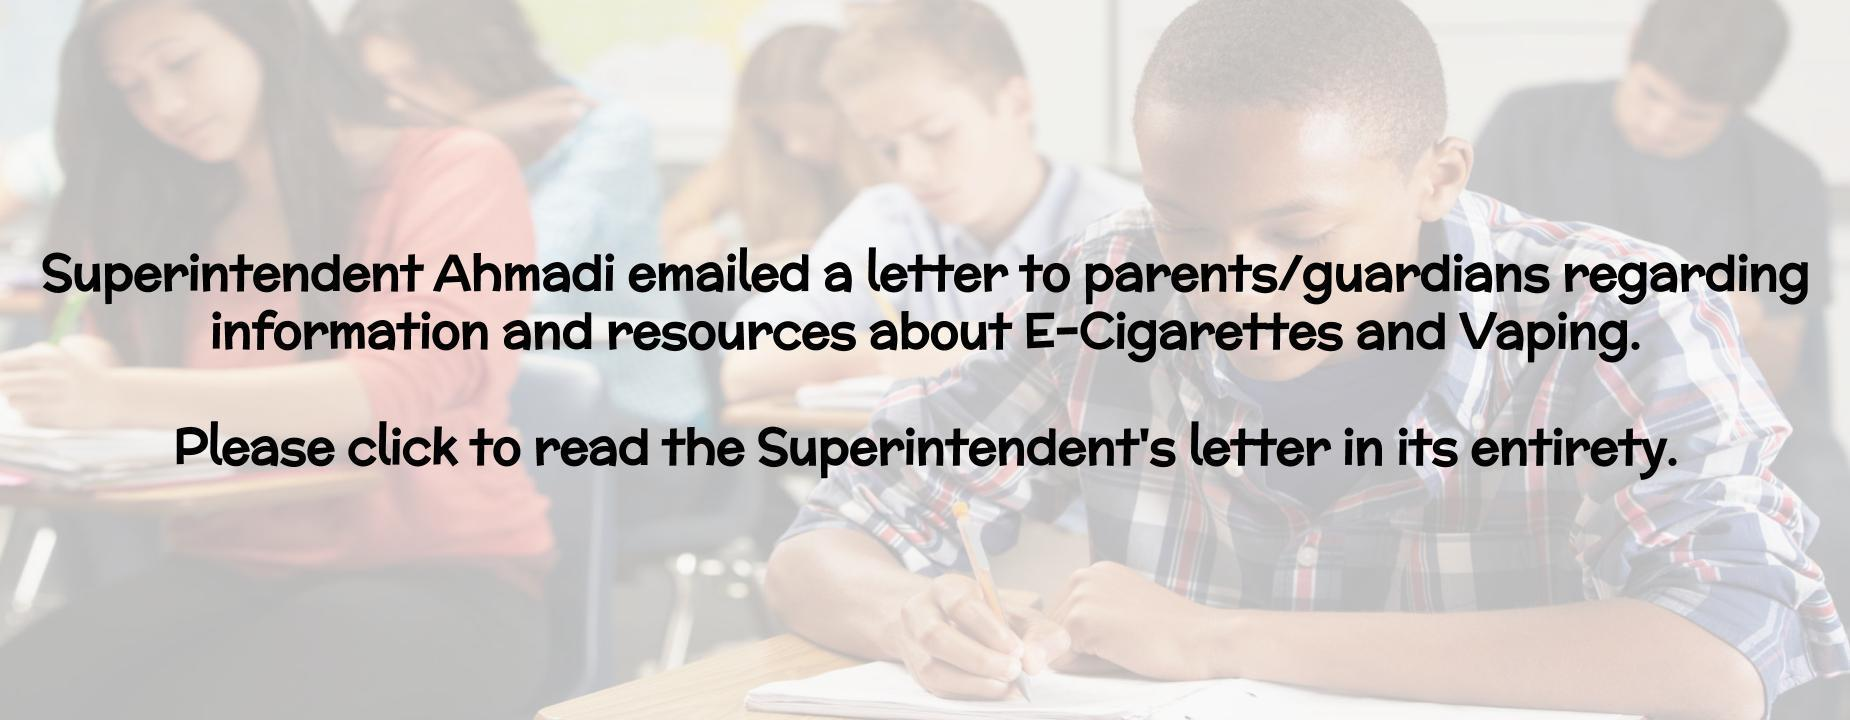 Vaping Letter from Superintendent